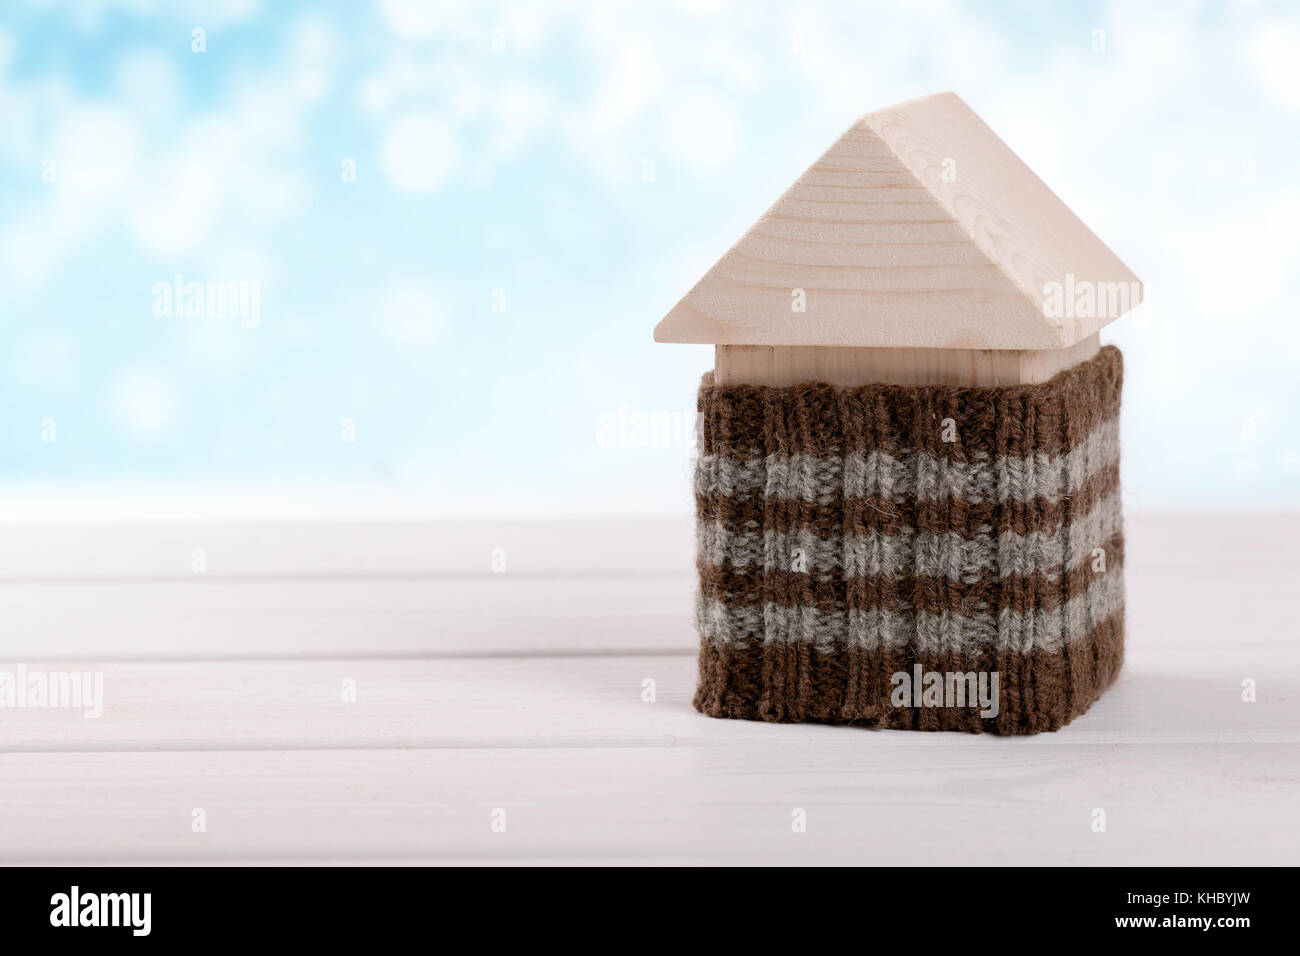 house insulation. energy efficient home concept - Stock Image